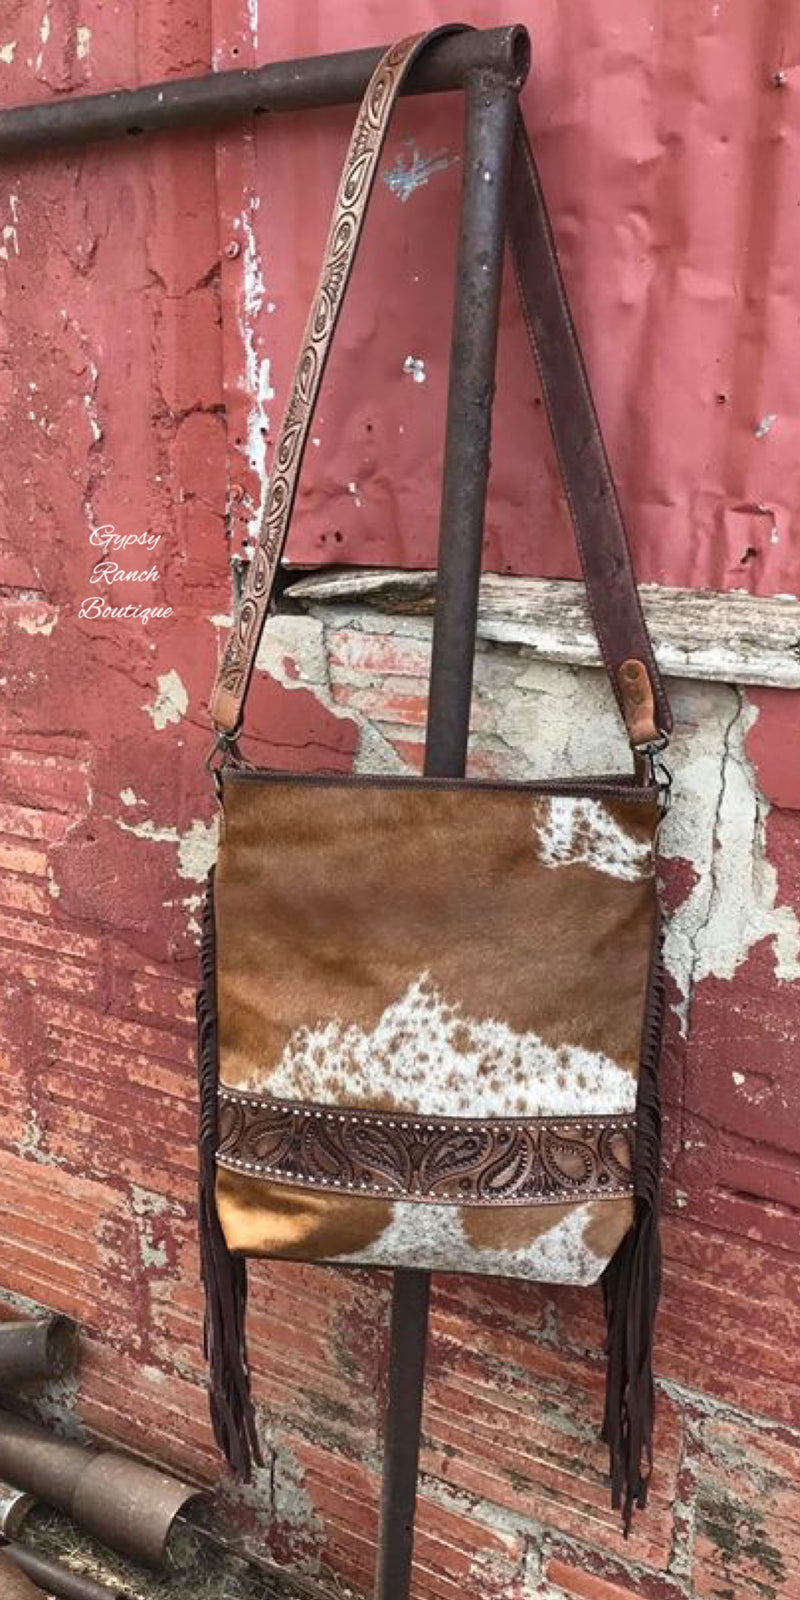 Brenham Cowhide Paisley Leather Fringe Concealed Carry Purse Bag